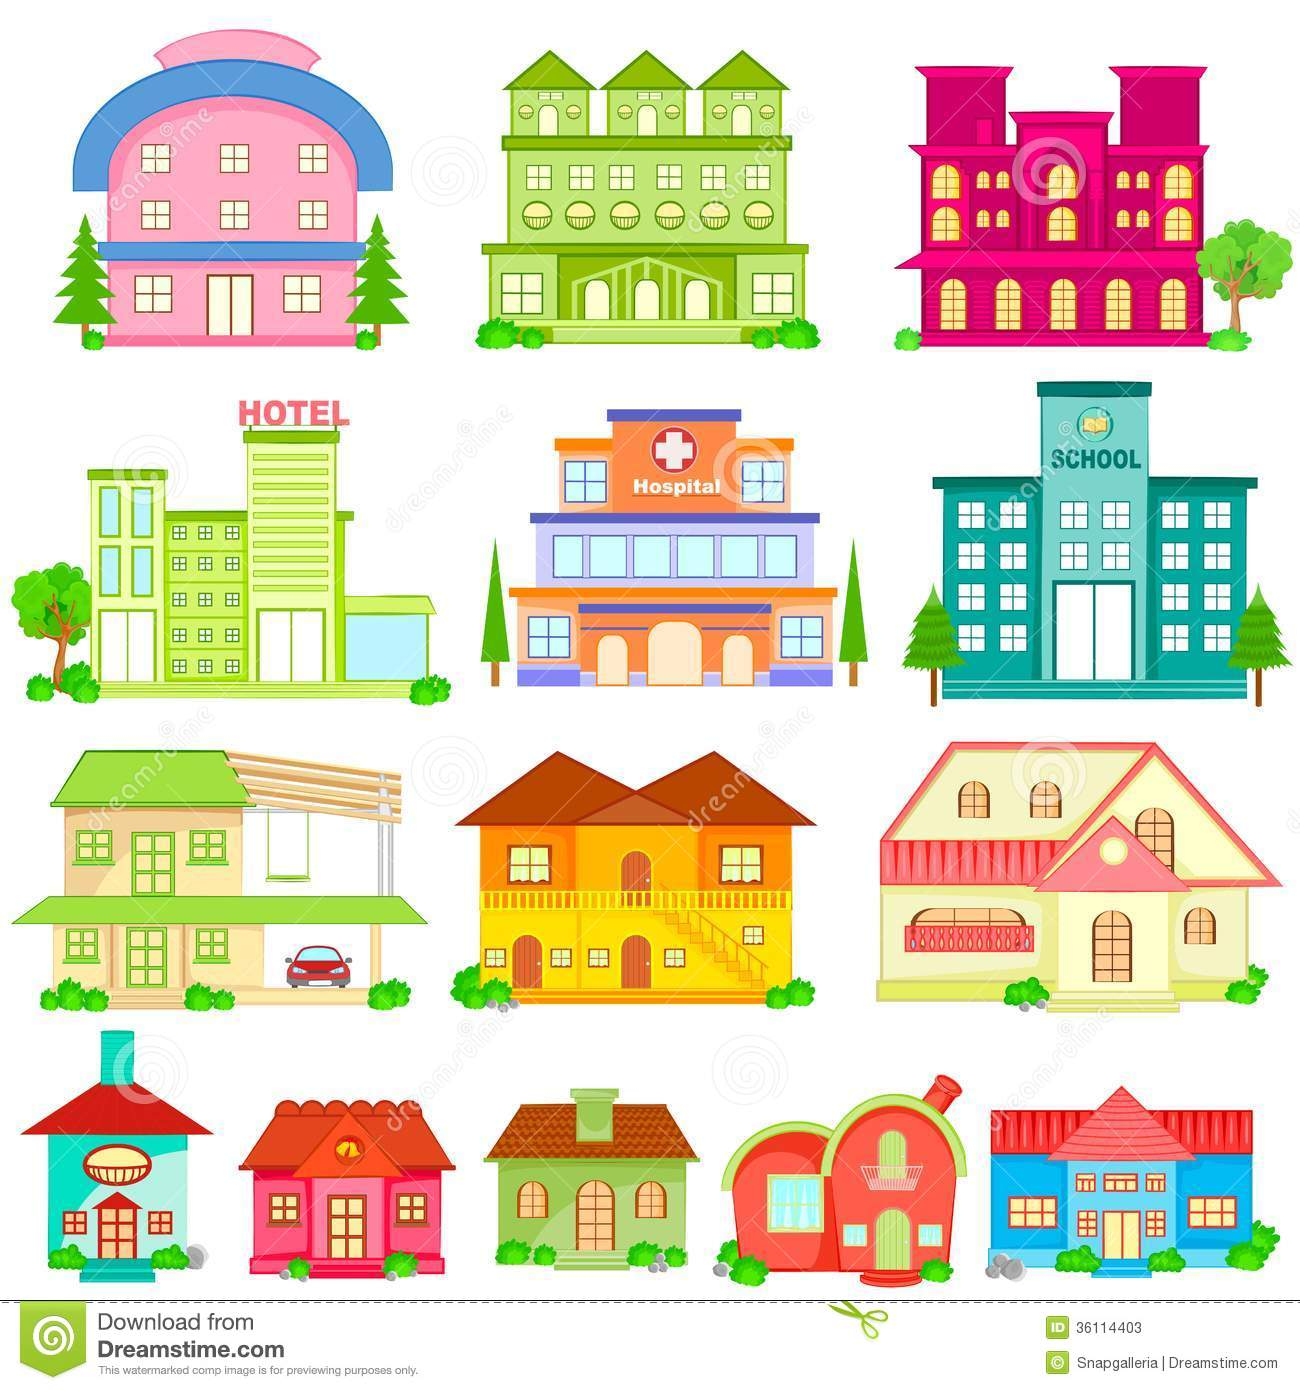 clipart icon collection - photo #45